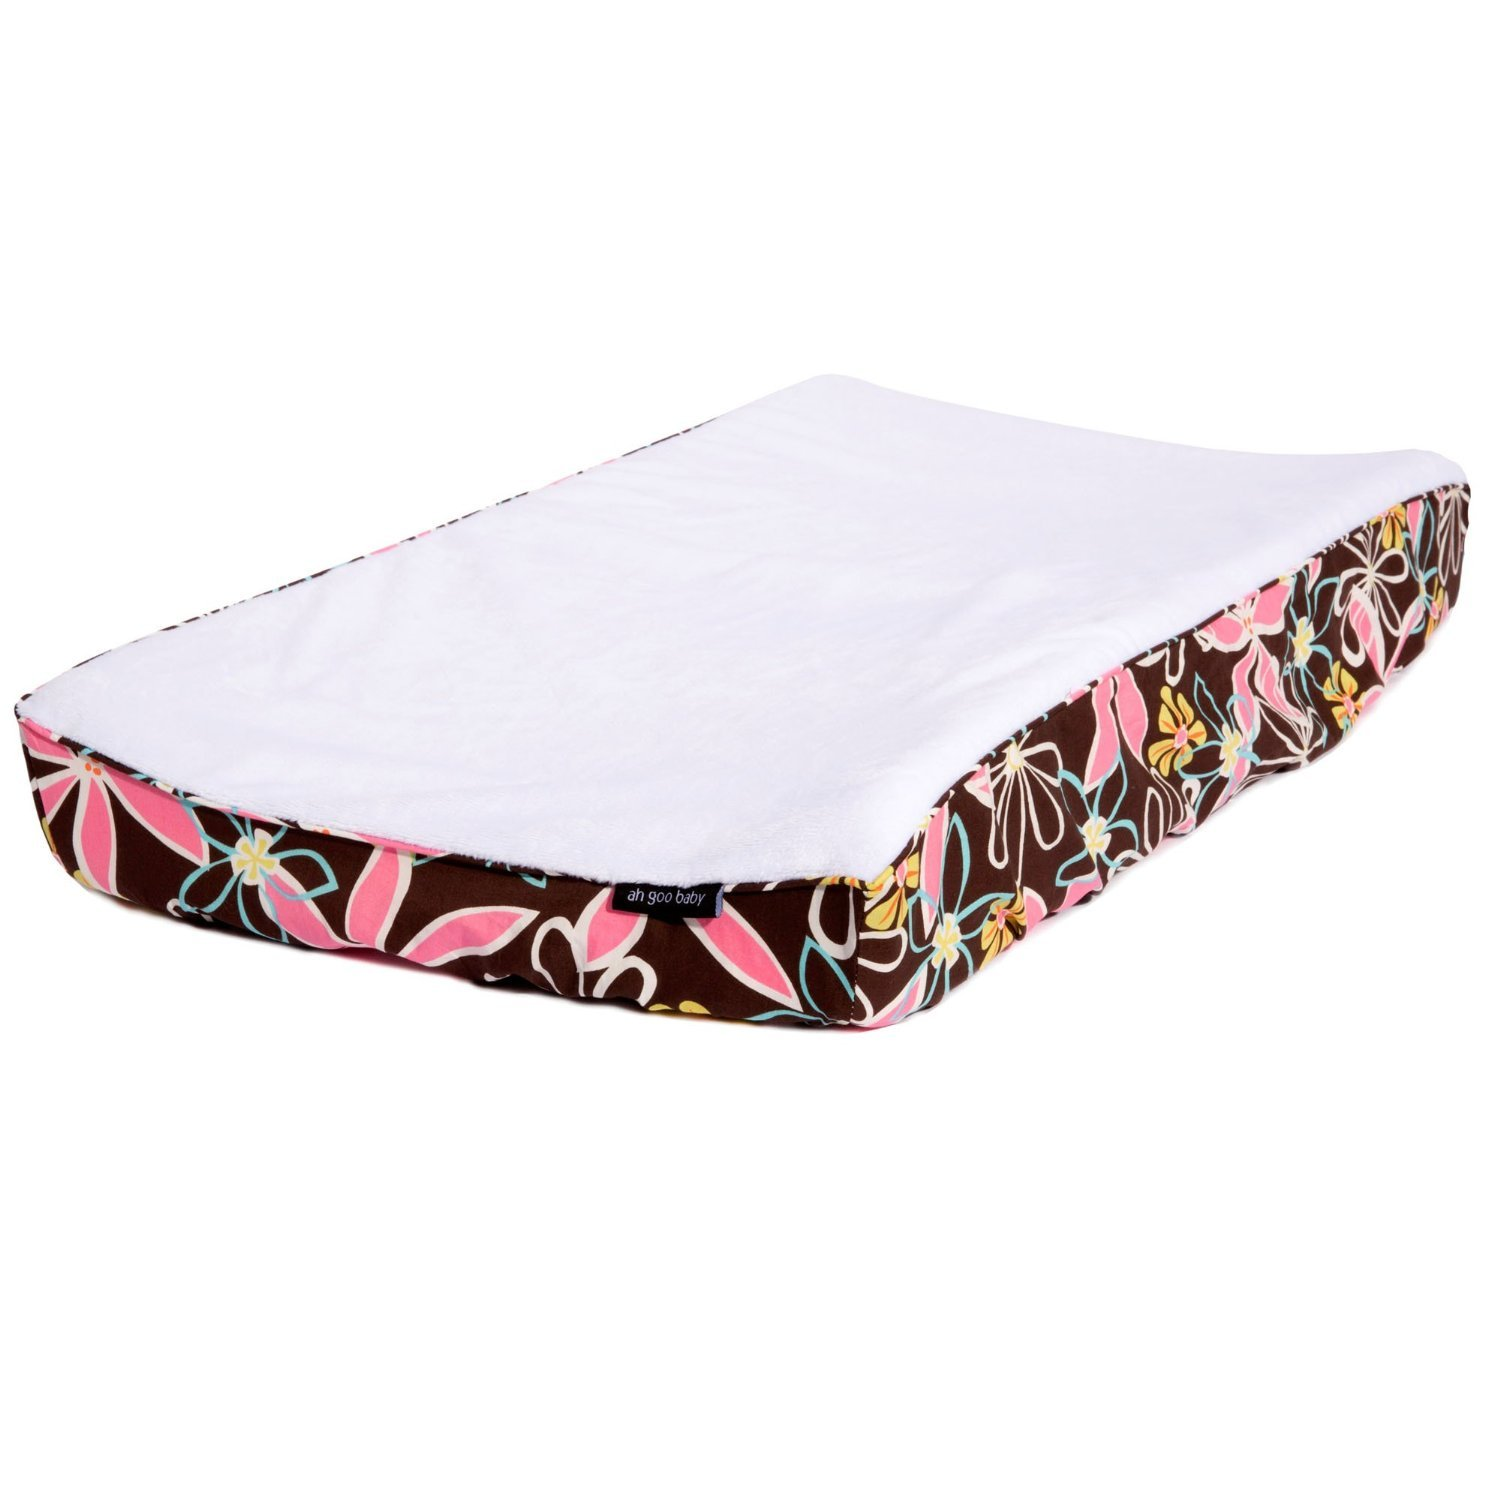 Ah Goo Baby 100% Cotton Changing Pad Cover - Retro Daisy